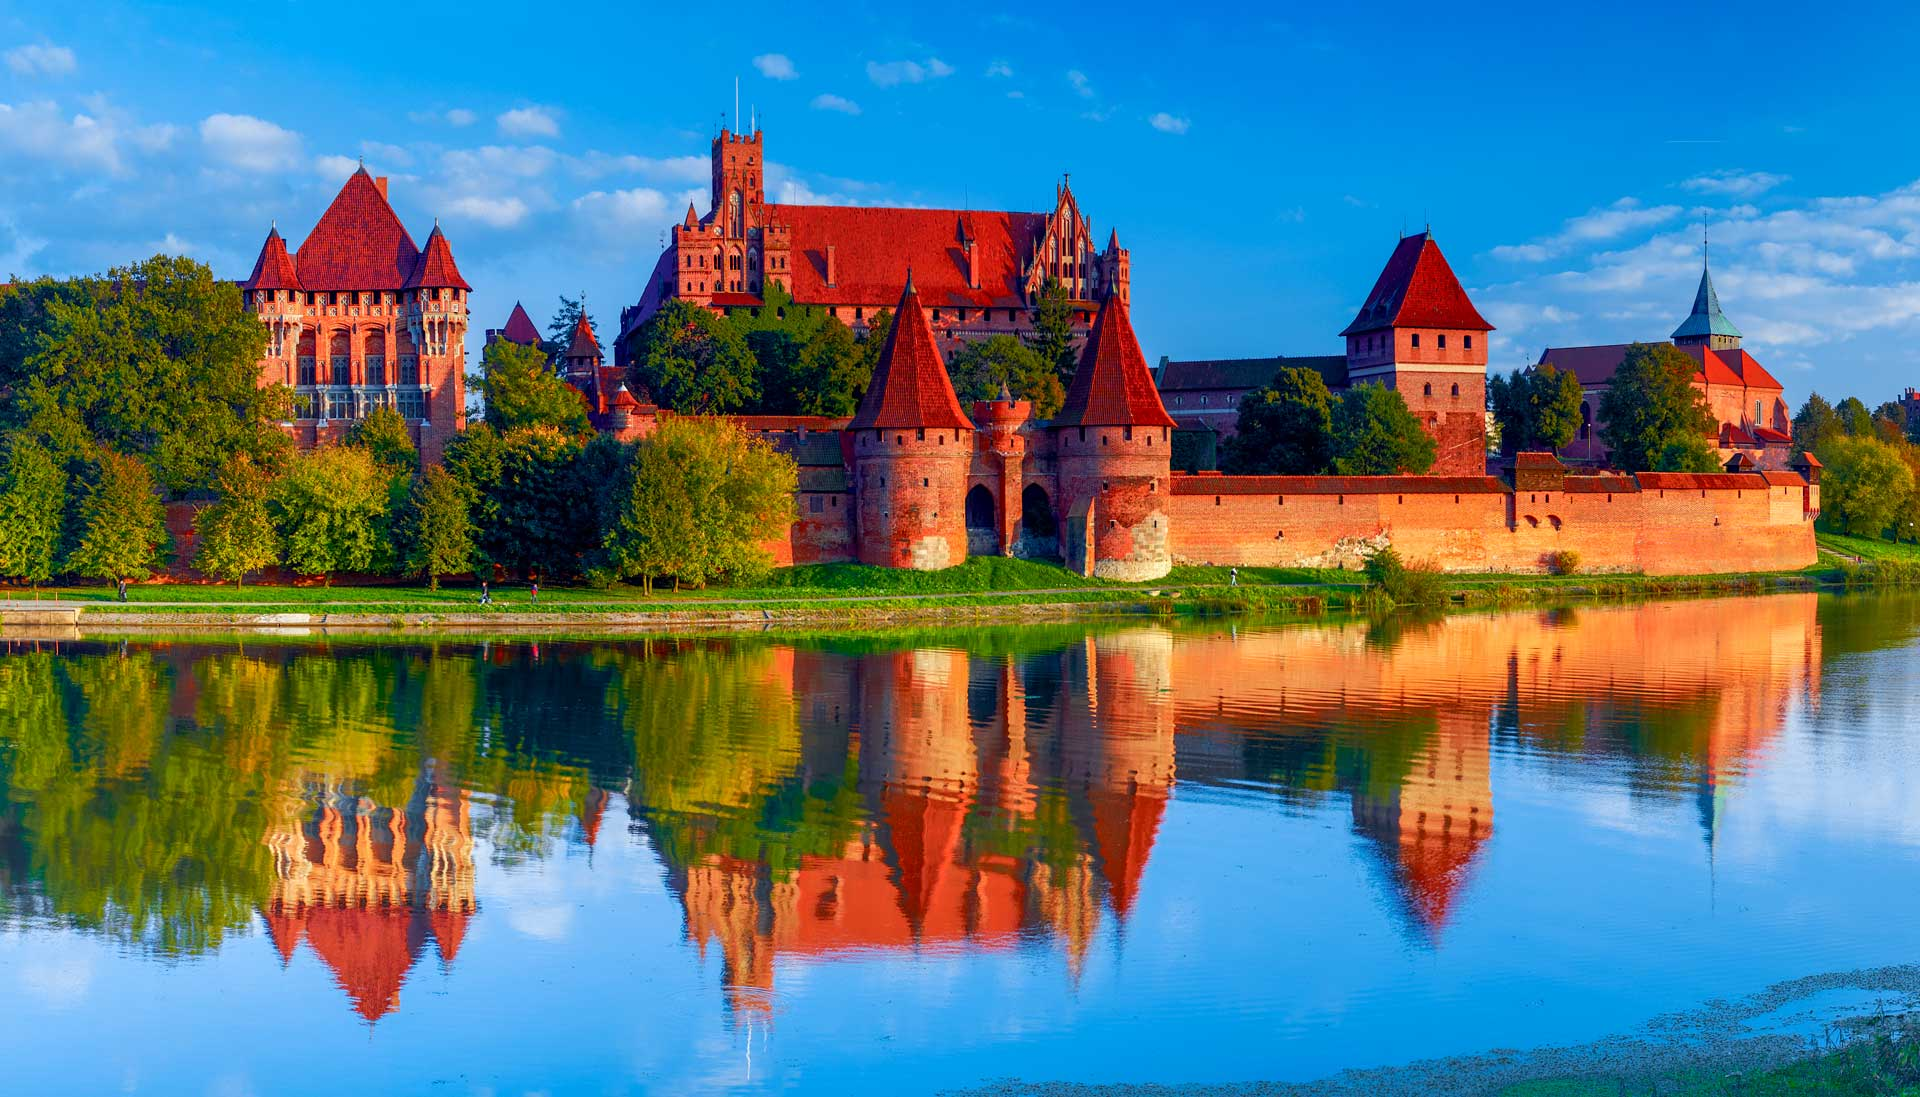 Malbork Castle PolandSHIOK polish festival in Singapore | polandshiok.sg